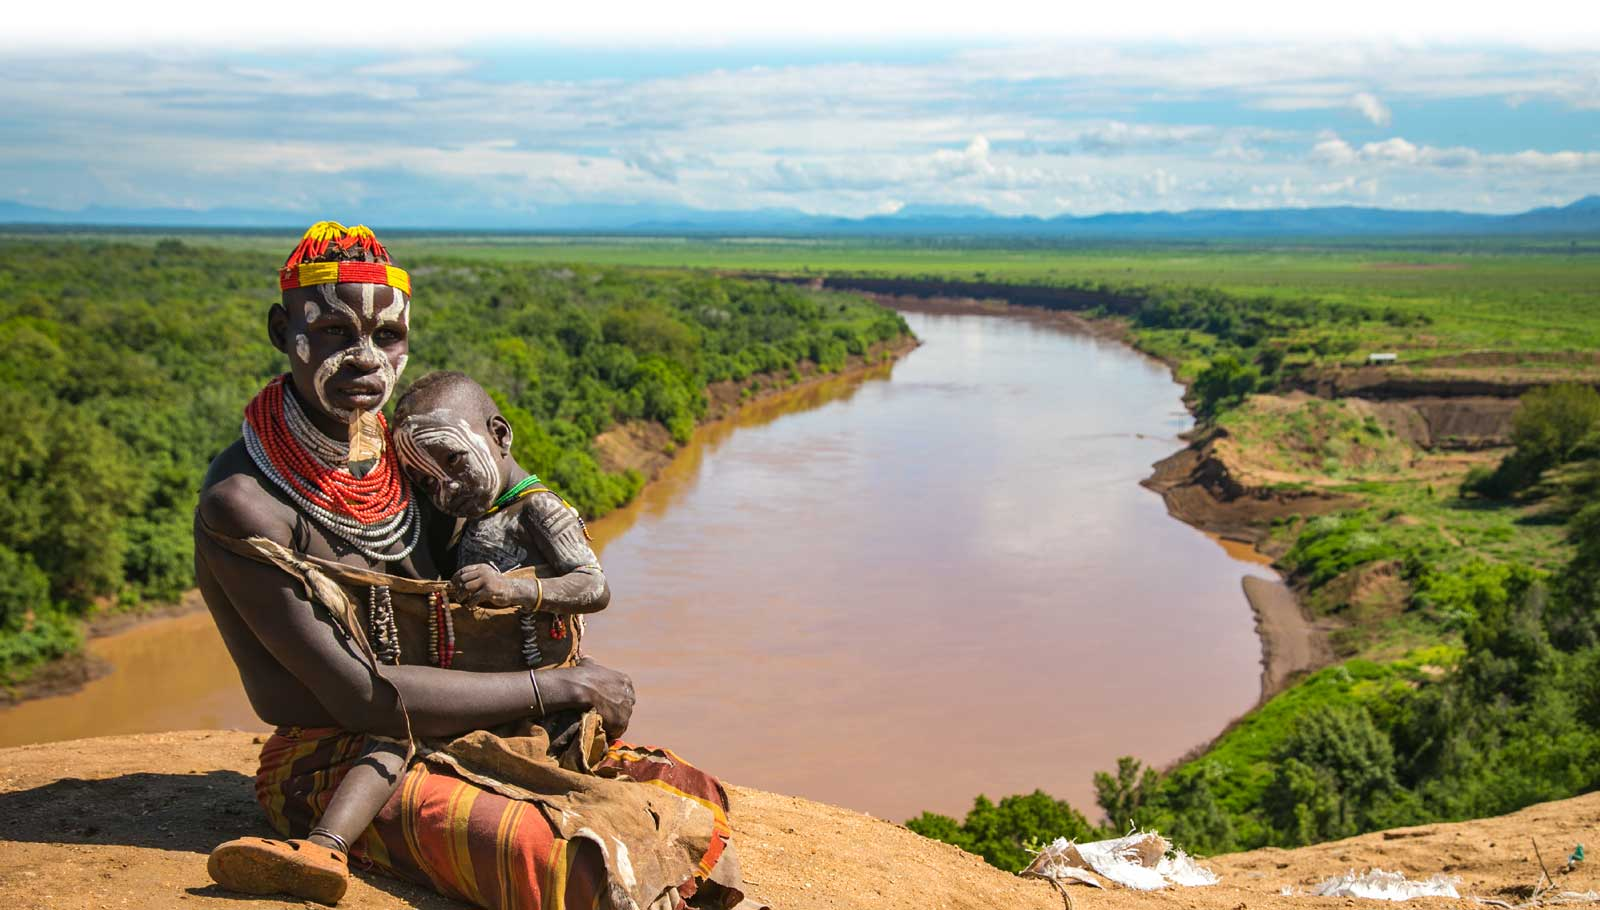 Kara parent and child sitting along the bank of the Omo River. Copyright: Kelly Fogel